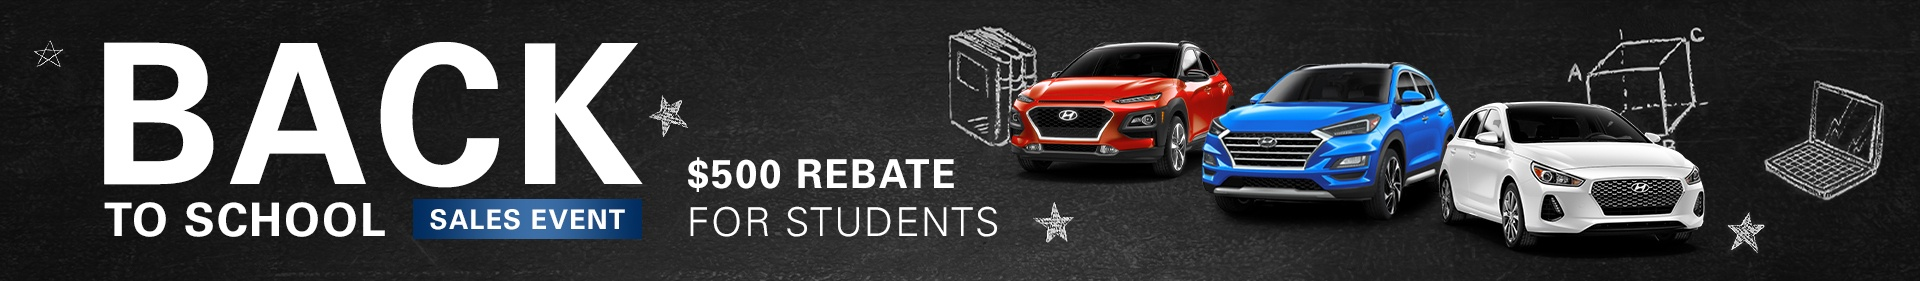 KitchenerHyundai_BacktoSchool